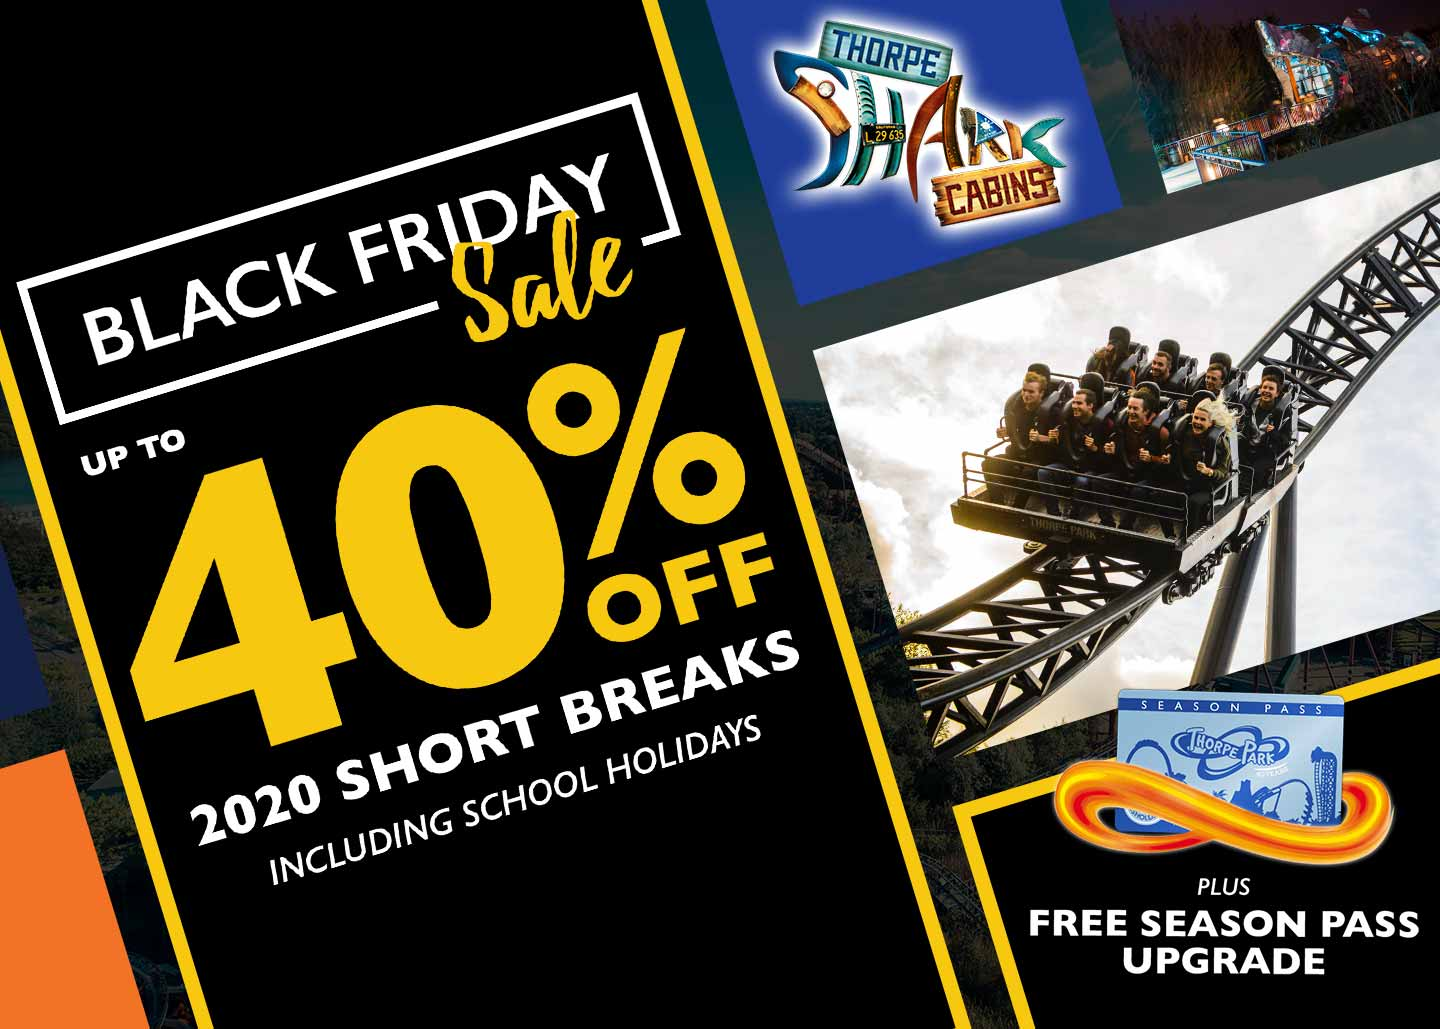 Thorpe Park Resort Early Booking Offer